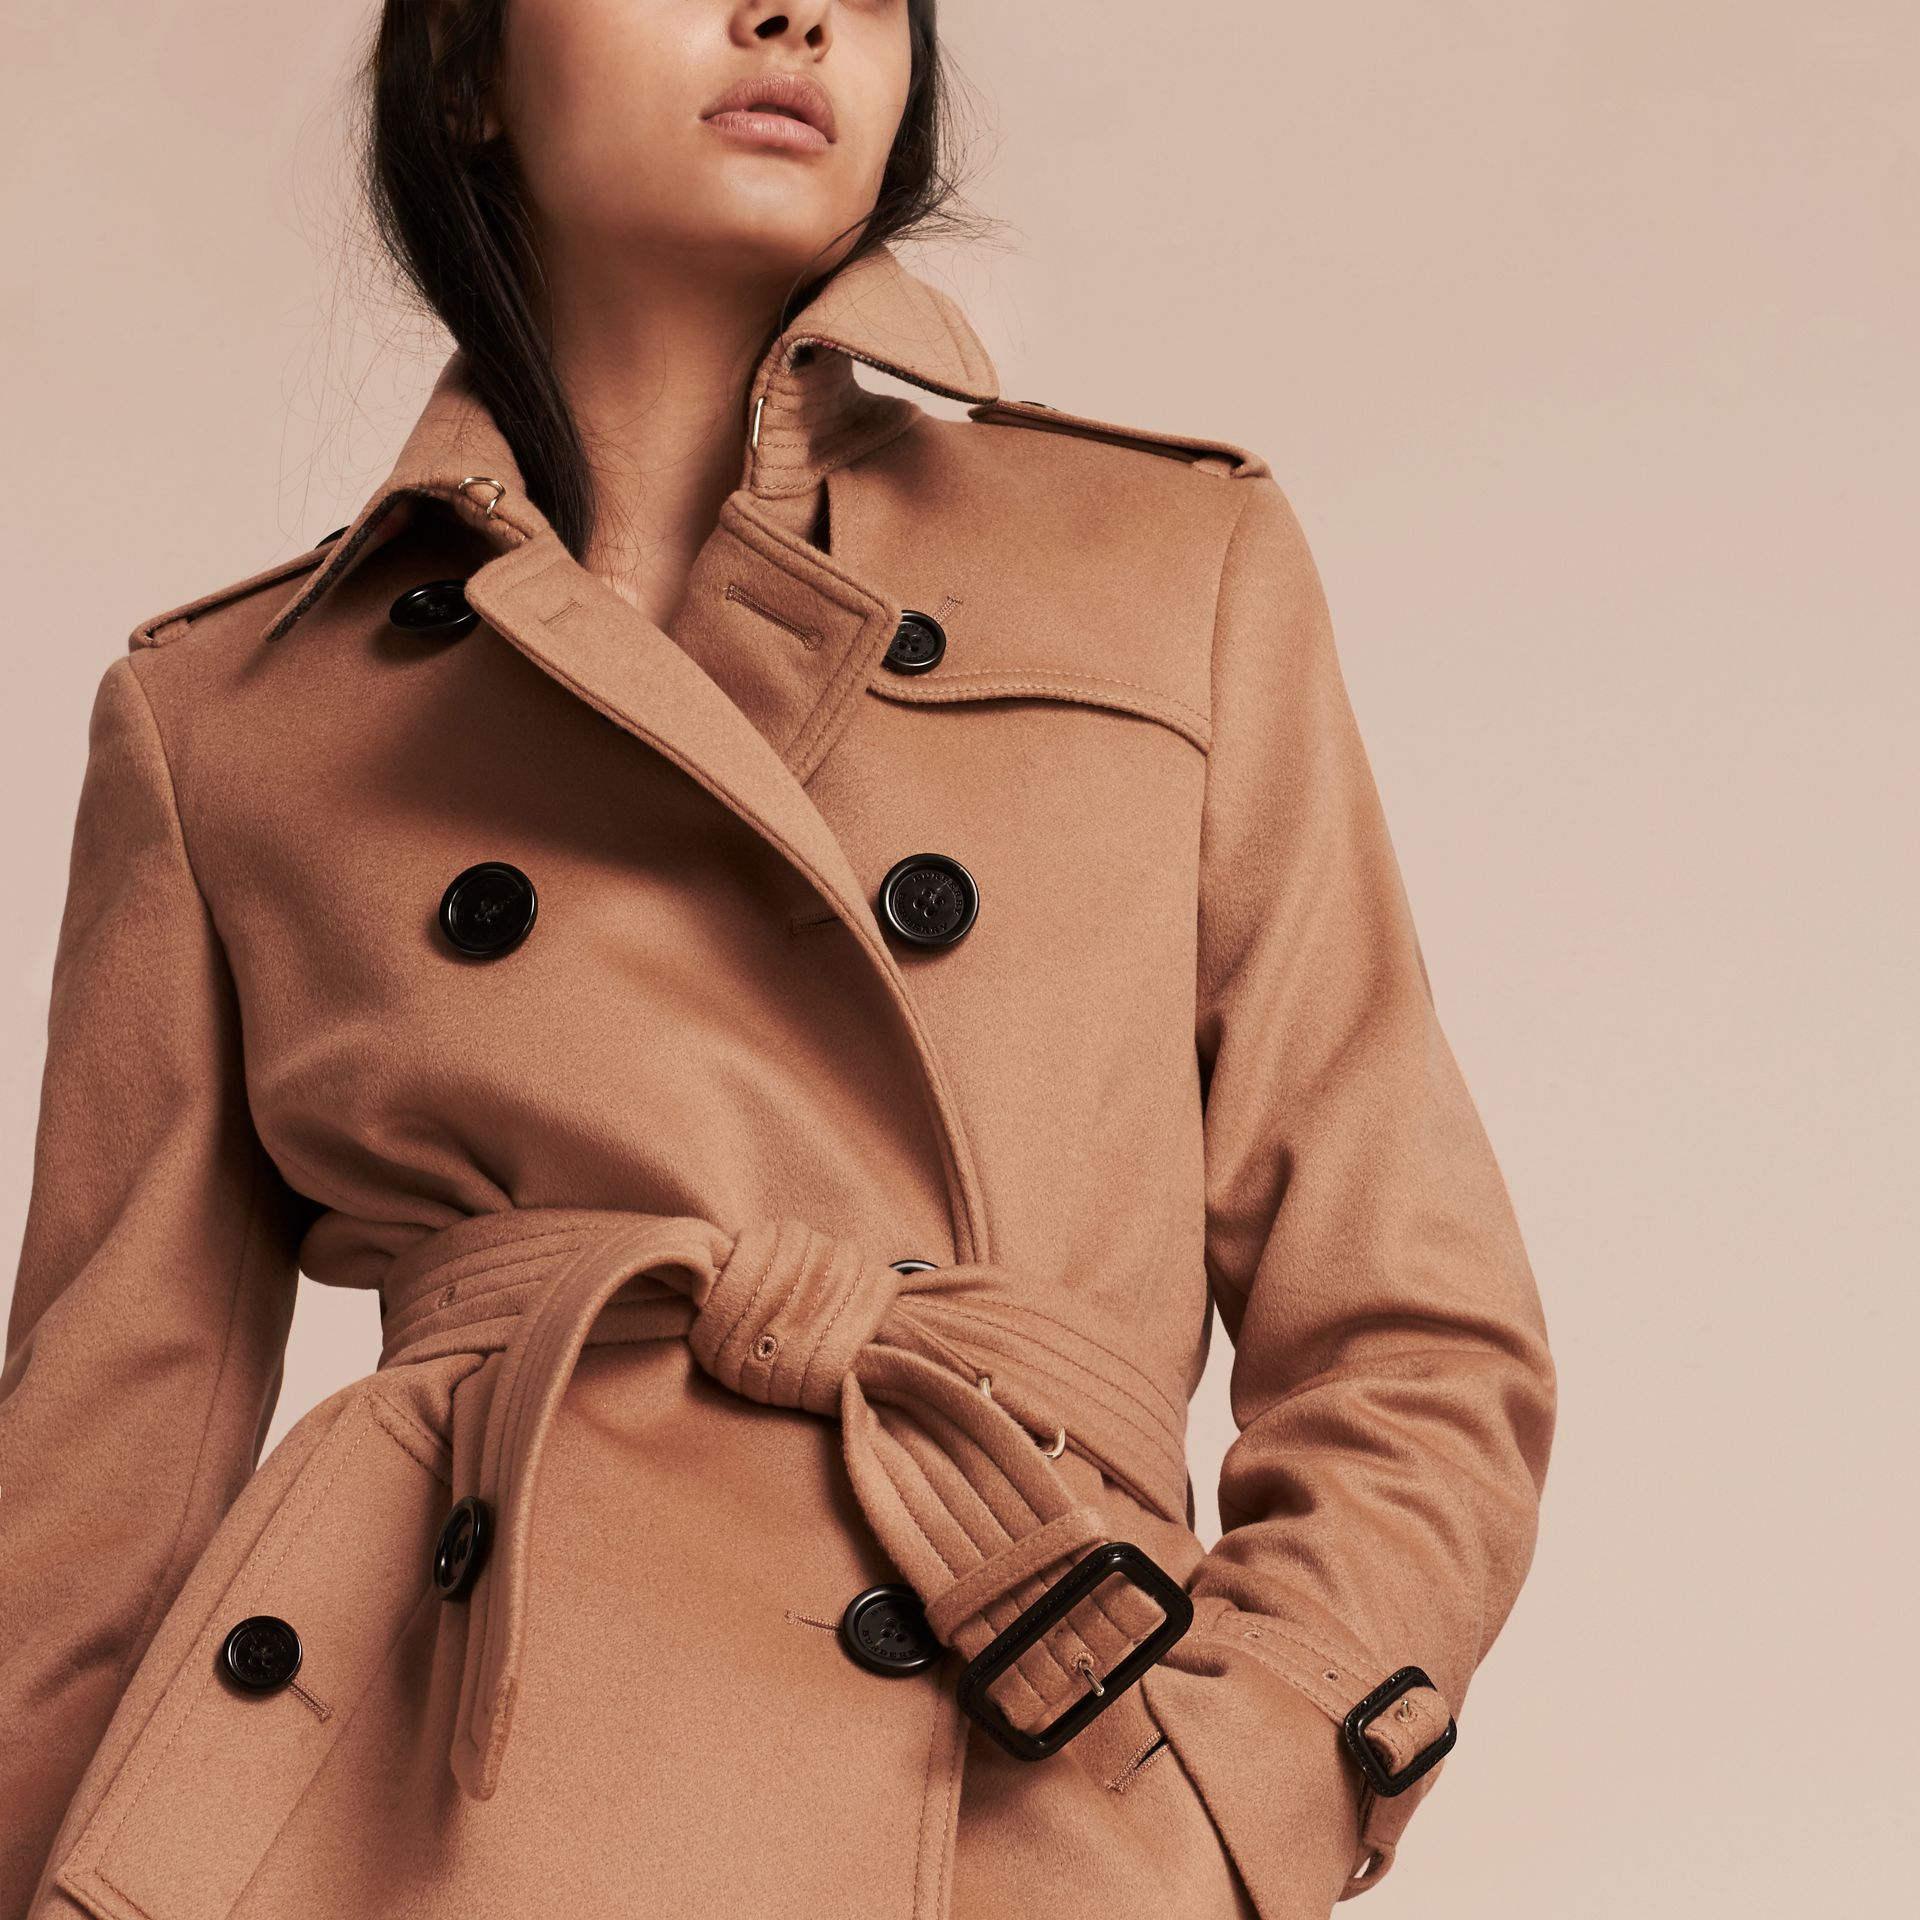 Wool Cashmere Trench Coat in Camel - Women | Burberry - gallery image 6